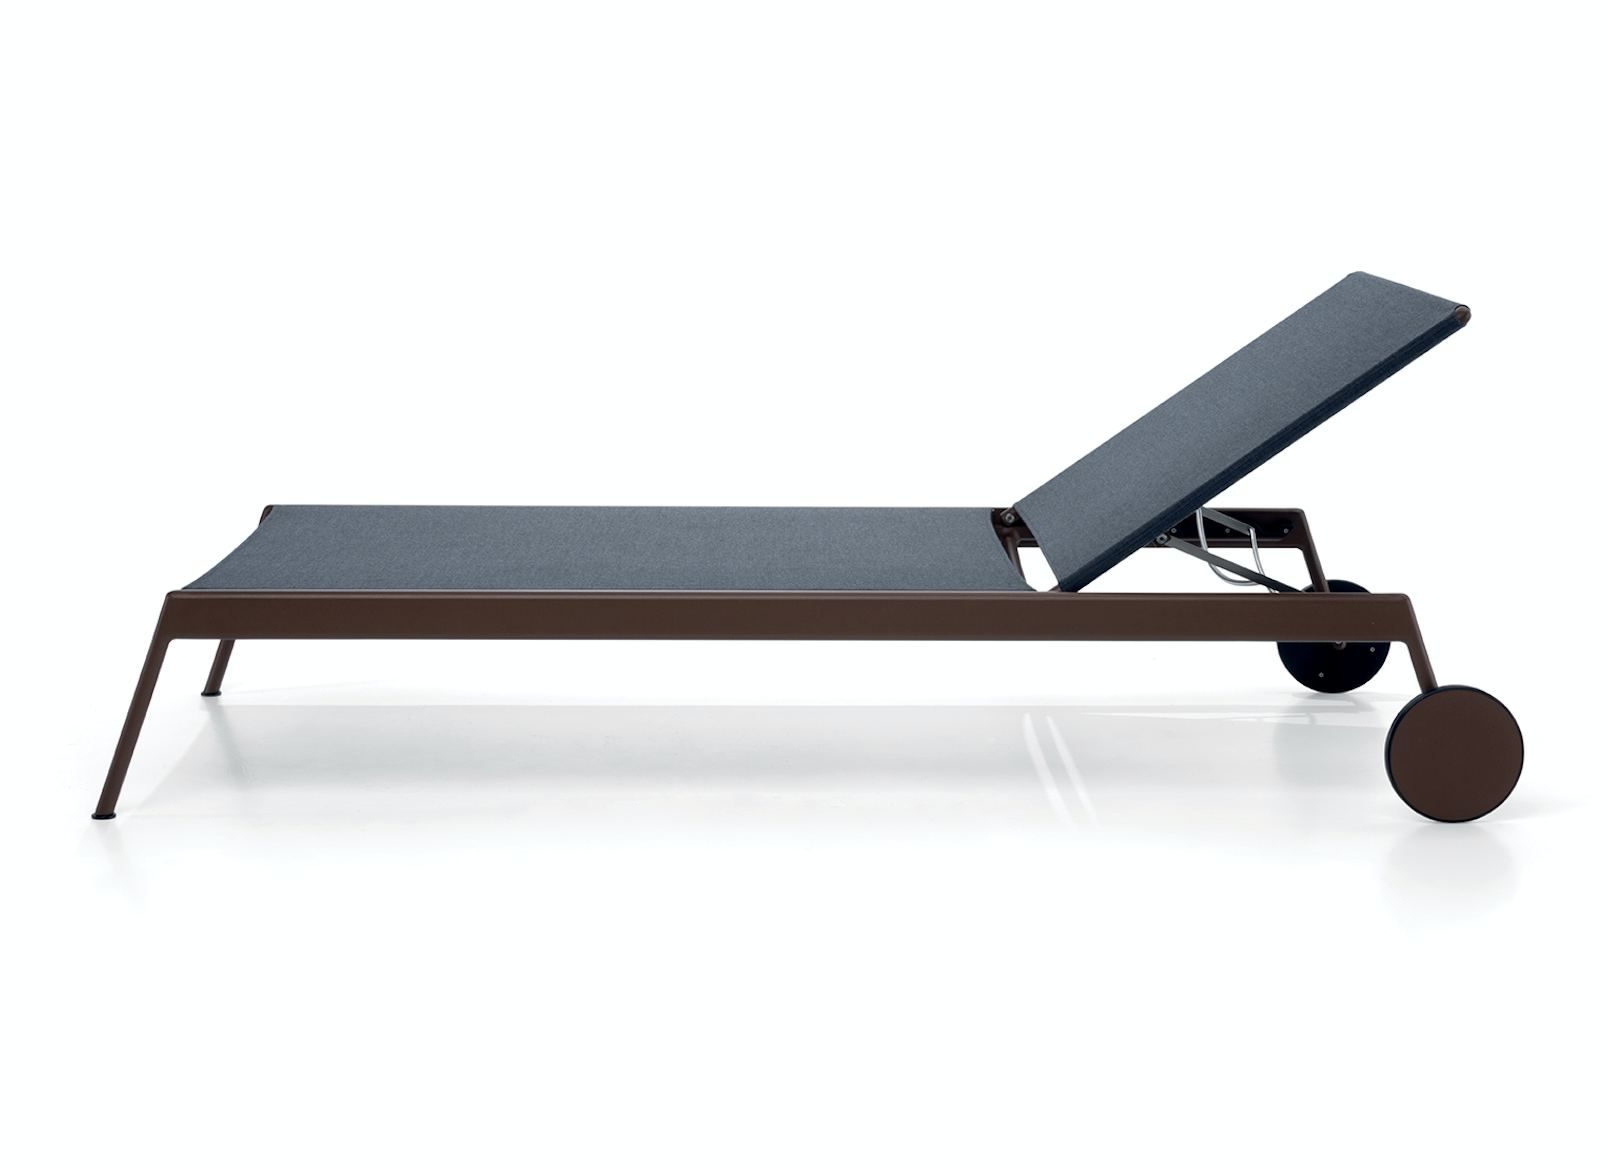 Product Image Piper sunlounger